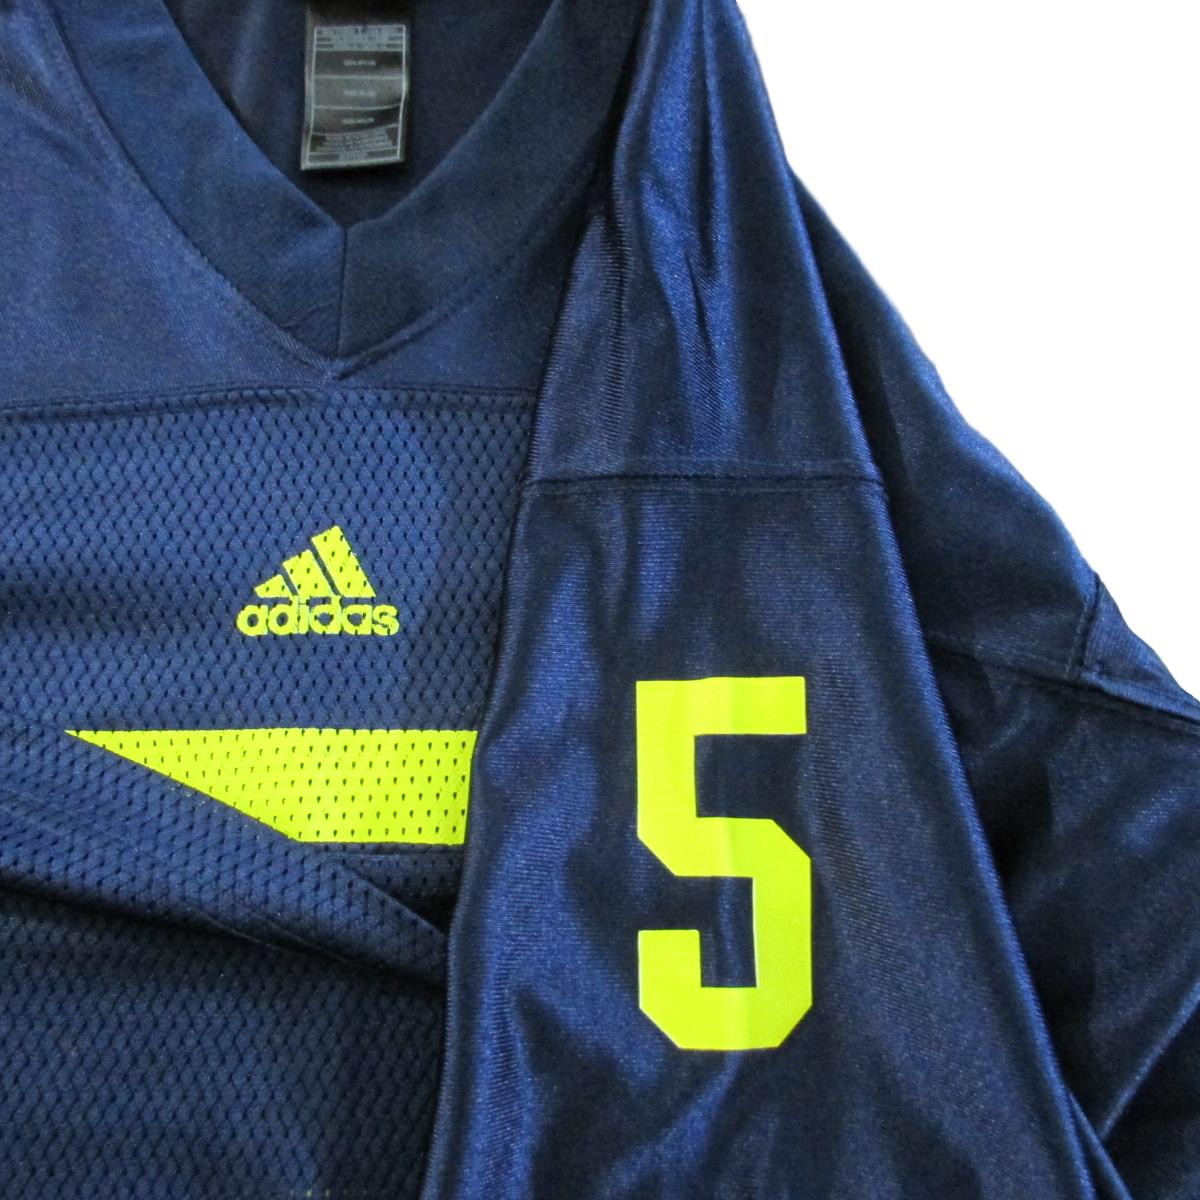 University of Michigan Wolverines College Football Vintage Jersey Adidas Sz S